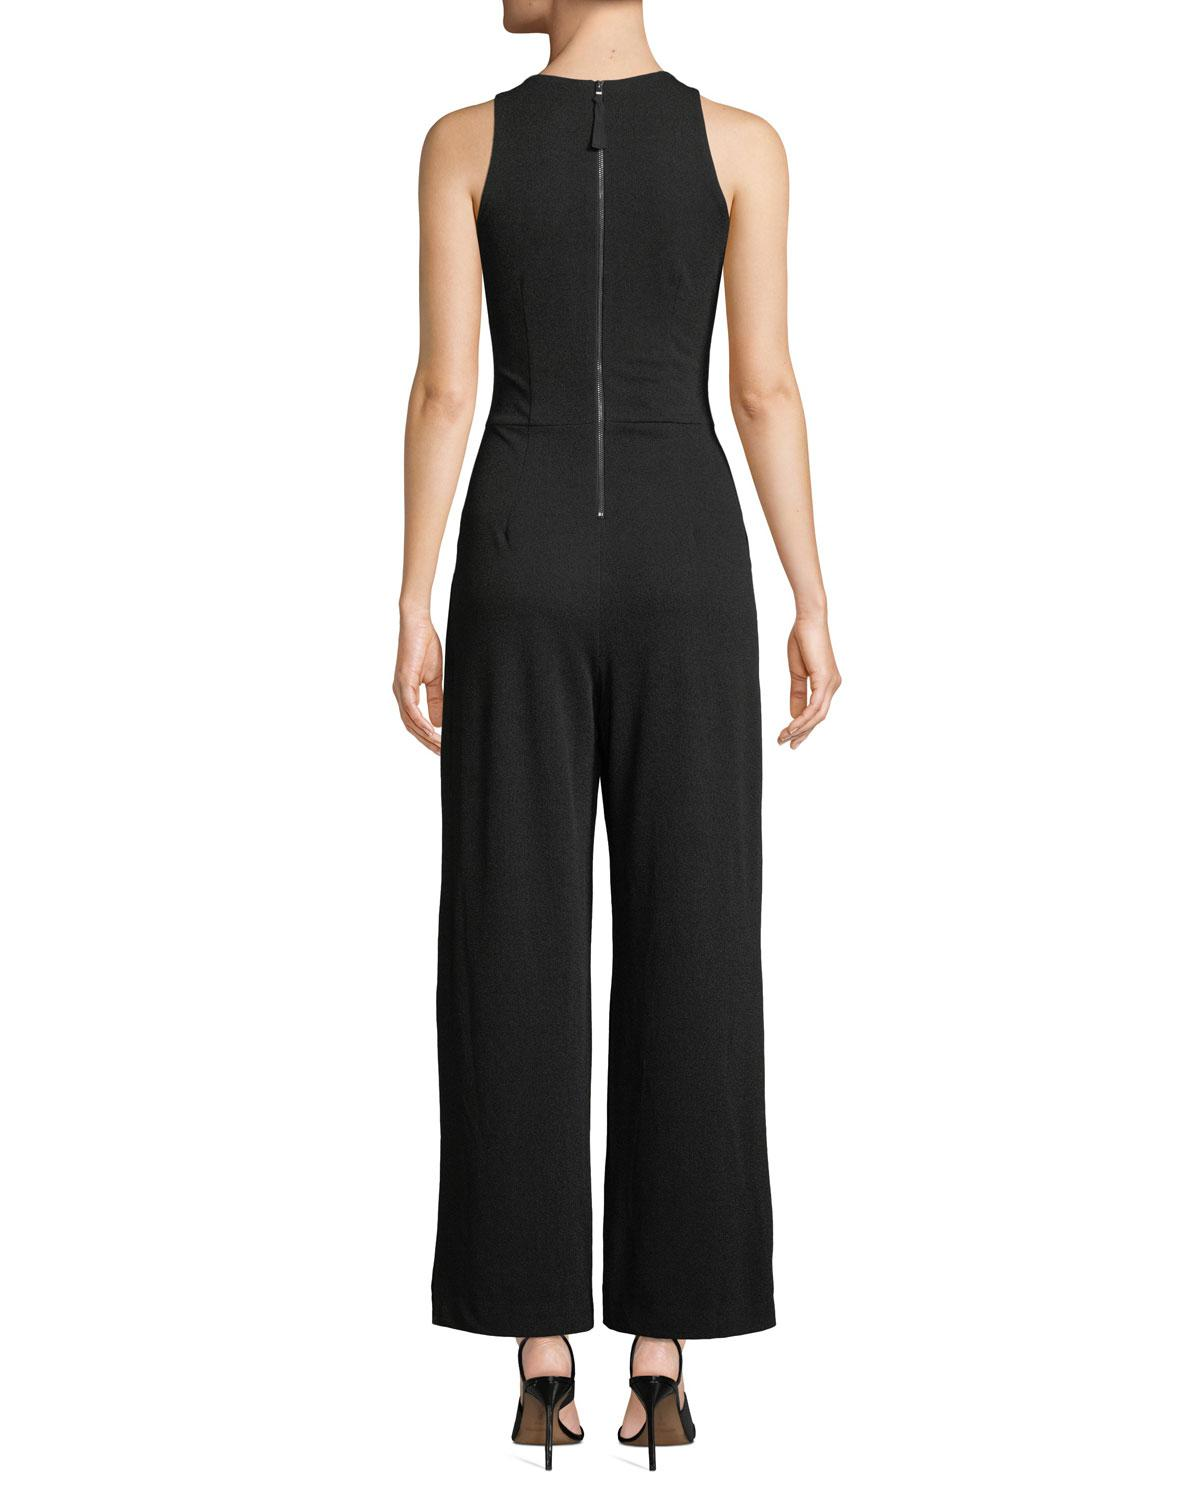 33b85e0c270f Lyst - Maggy London Ruched-bodice Jumpsuit in Black - Save 70%